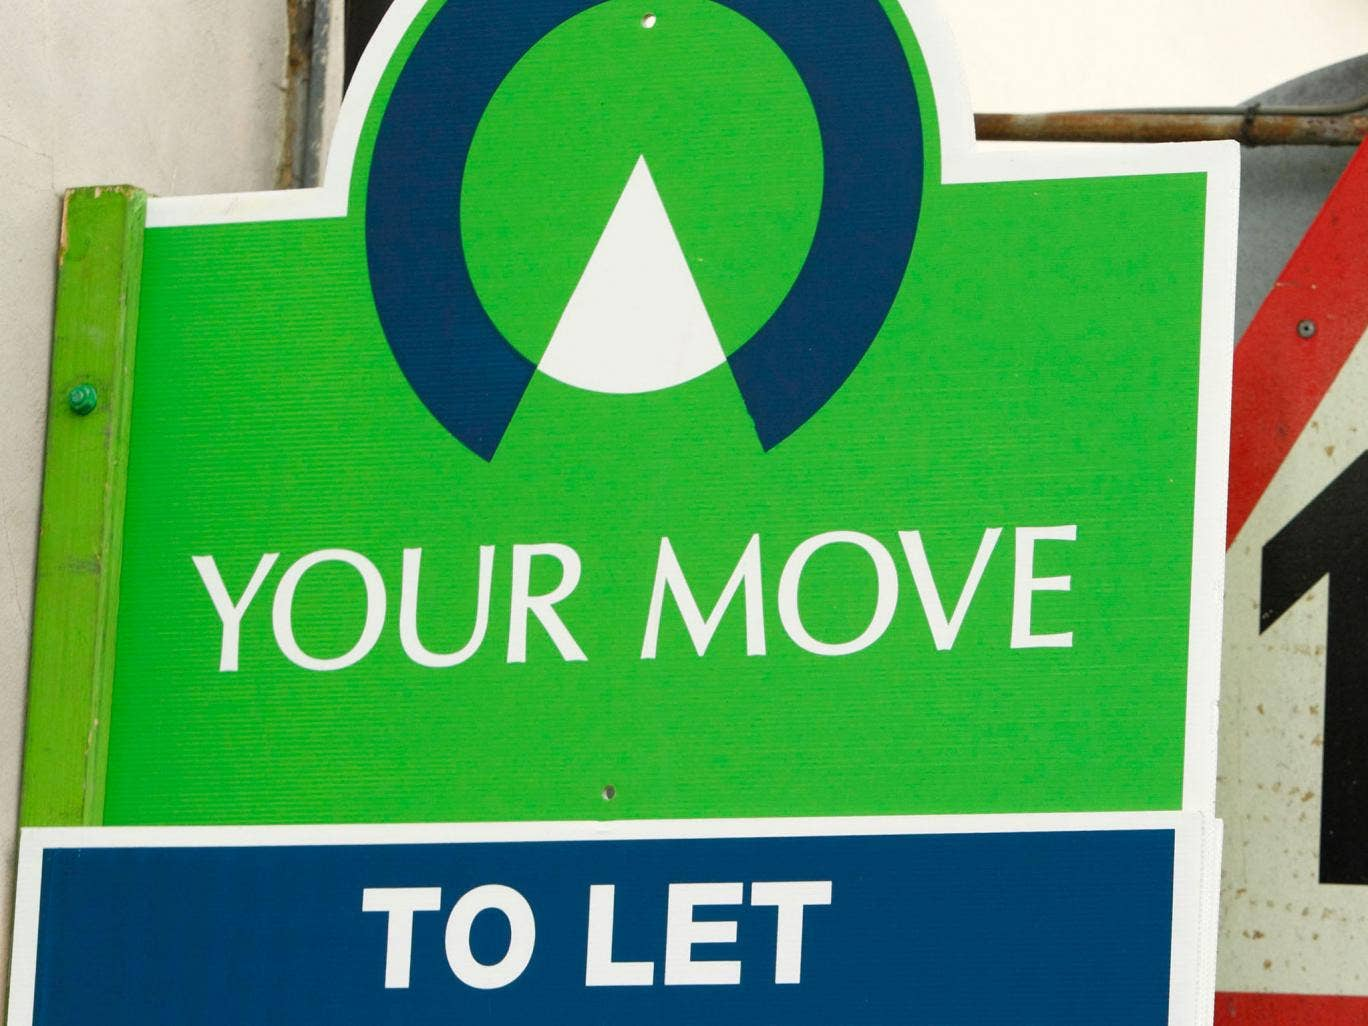 Rents in London have reached double those across the rest of the UK for the first time ever, according to new research